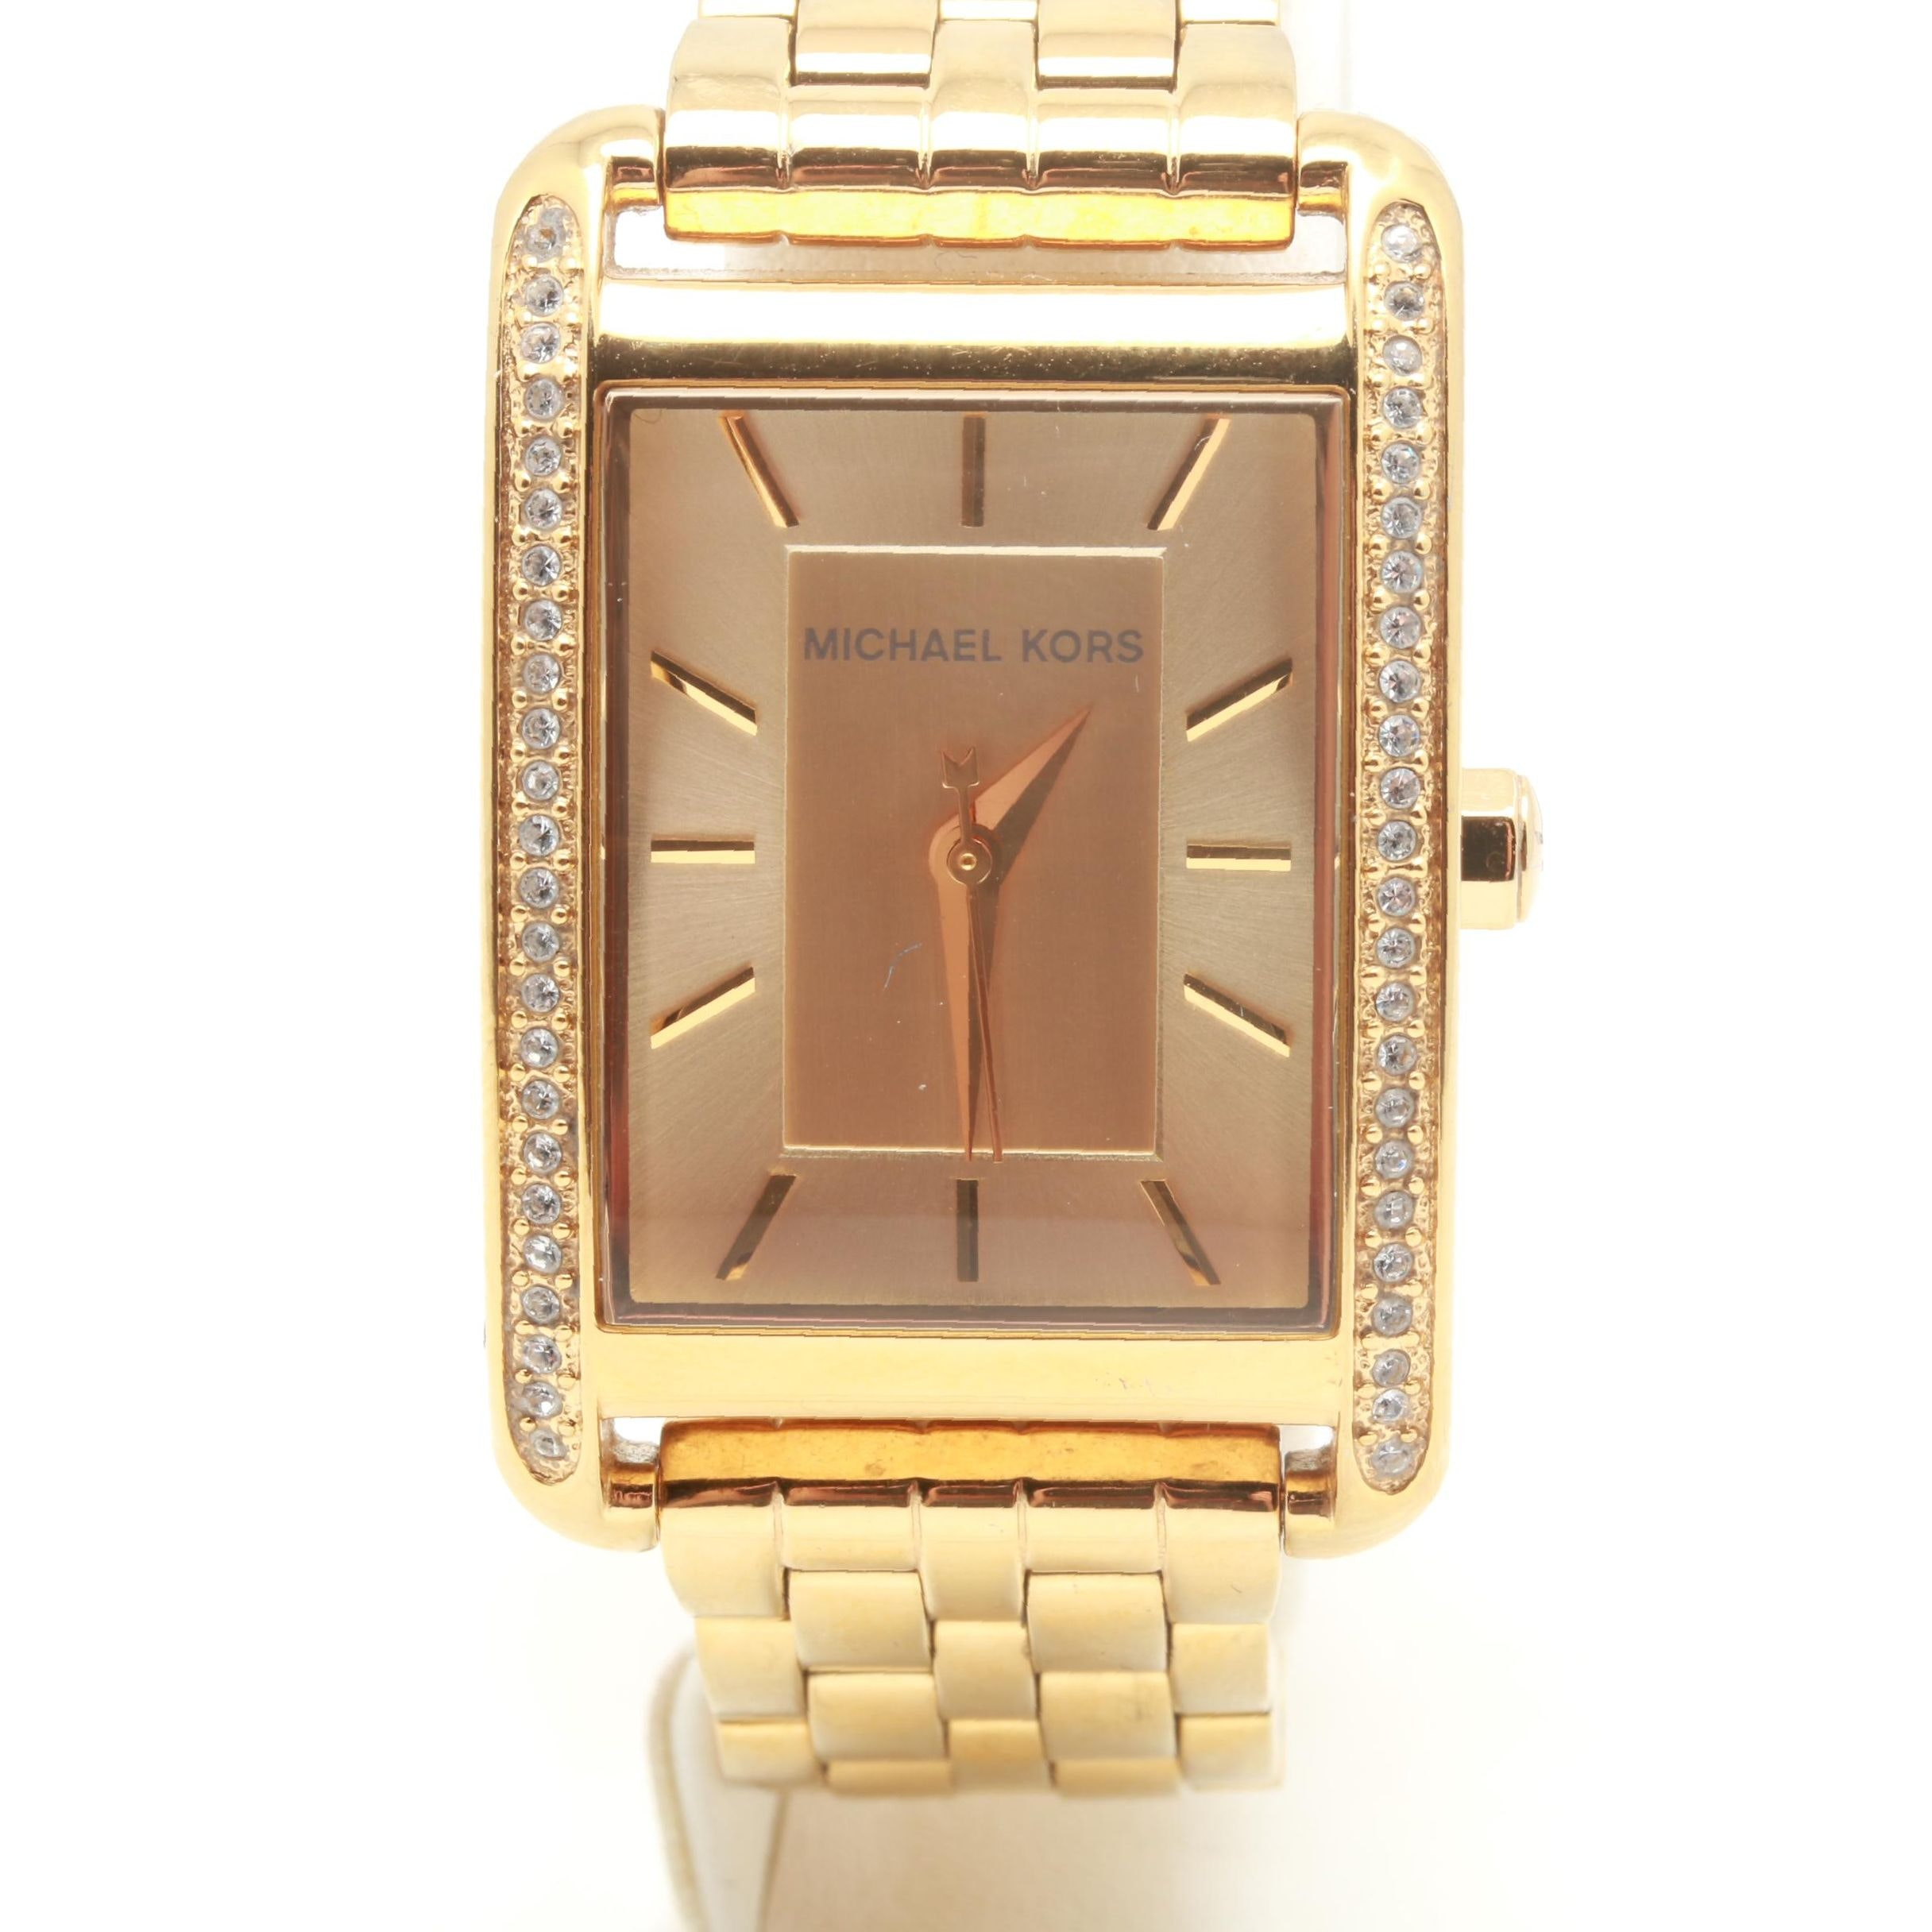 Michael Kors Gold Tone Crystal Accented Wristwatch